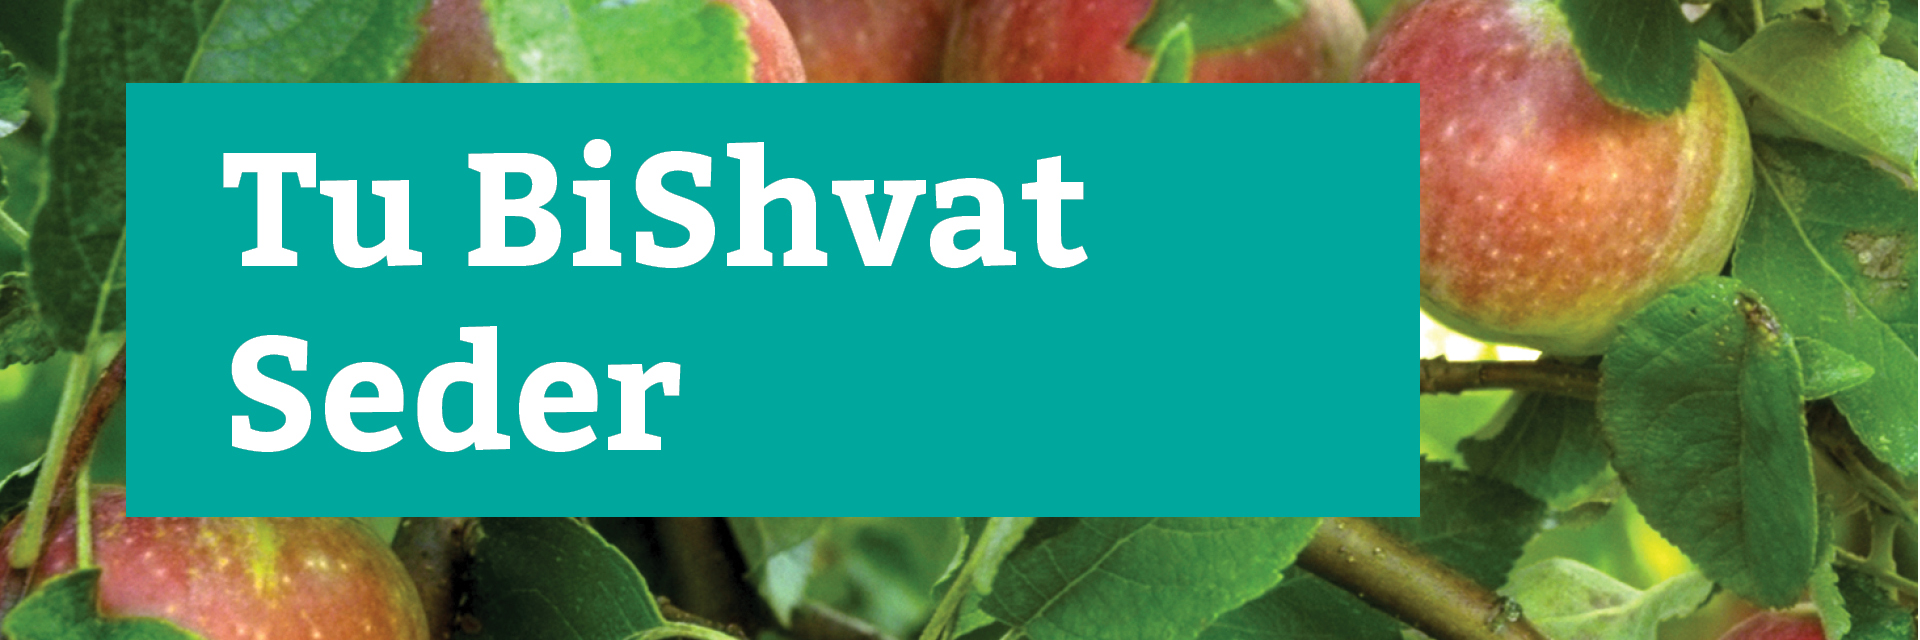 """<a href=""""https://www.congkti.org/event/tu-bi-shvat-seder.html""""                                     target="""""""">                                                                 <span class=""""slider_title"""">                                     Celebrate the Jewish new year of the trees.                                </span>                                                                 </a>                                                                                                                                                                                       <span class=""""slider_description"""">Wednesday, January 27th</span>                                                                                     <a href=""""https://www.congkti.org/event/tu-bi-shvat-seder.html"""" class=""""slider_link""""                             target="""""""">                             Information here...                            </a>"""